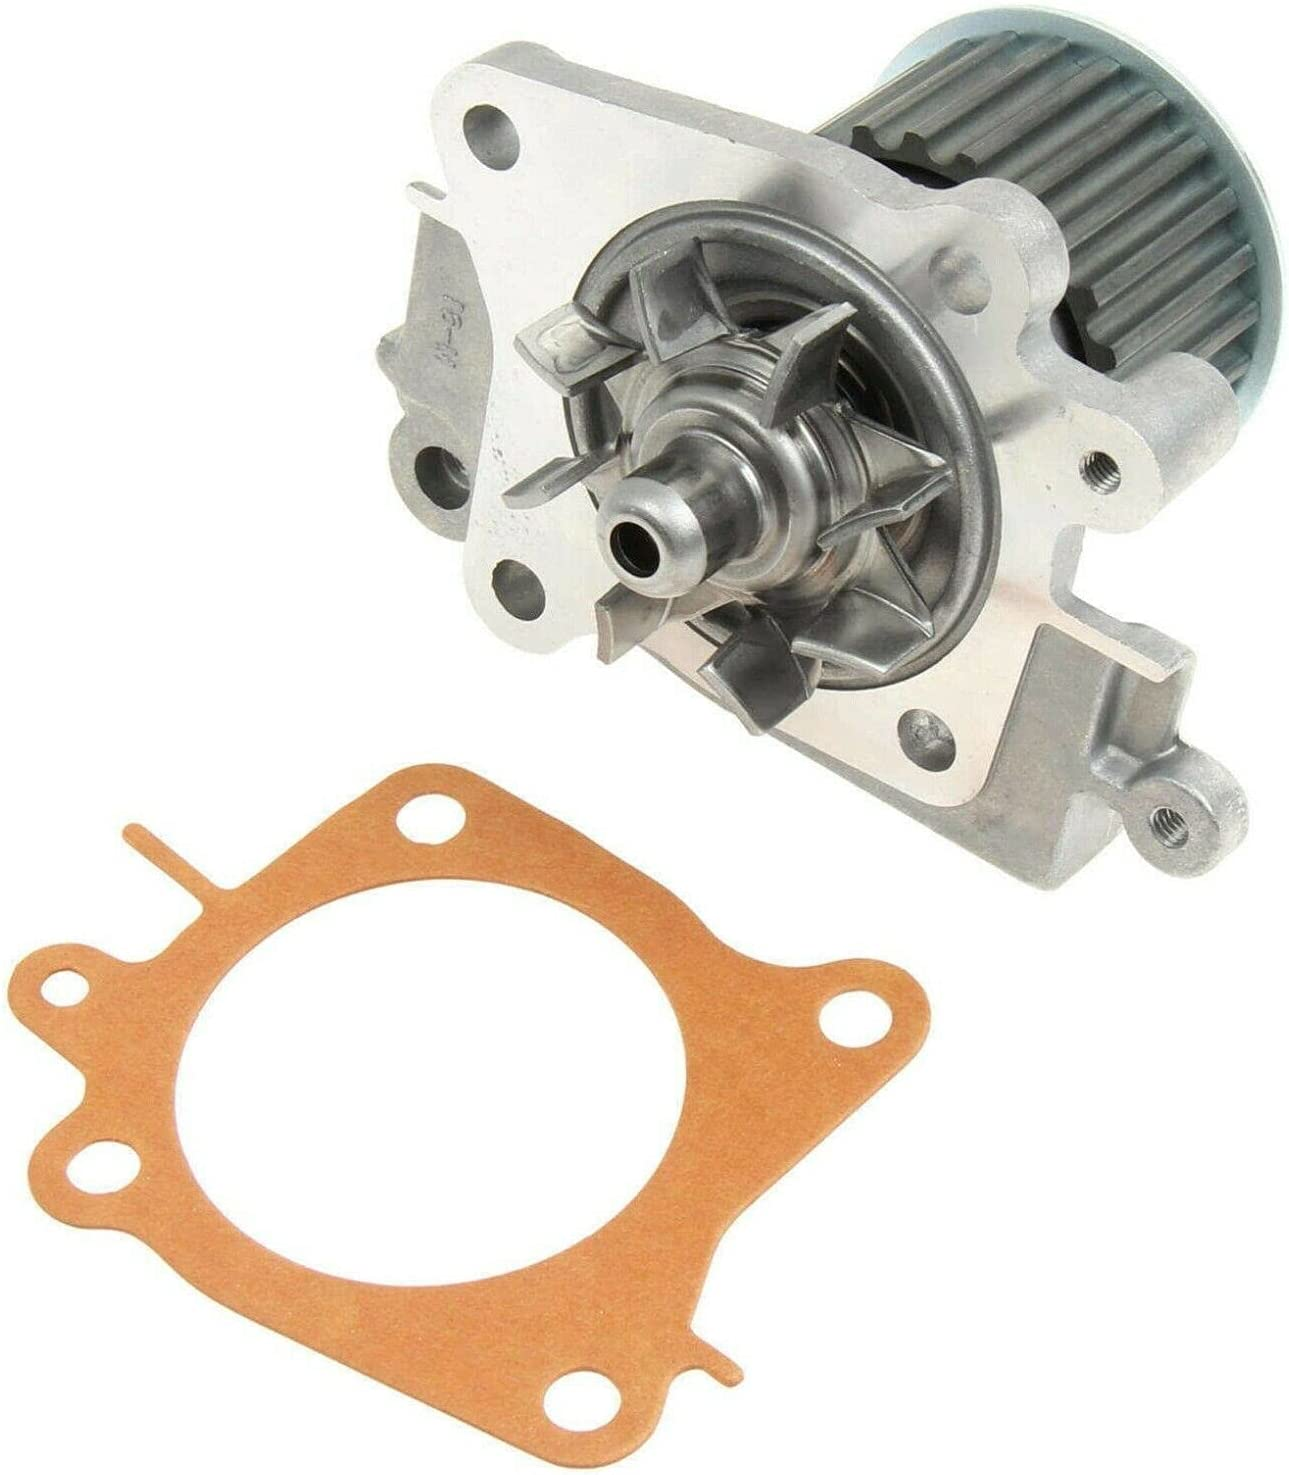 MD309756A Engine Water Pump Compatible Max 57% OFF Luxury Lancer Mitsubishi with Mi